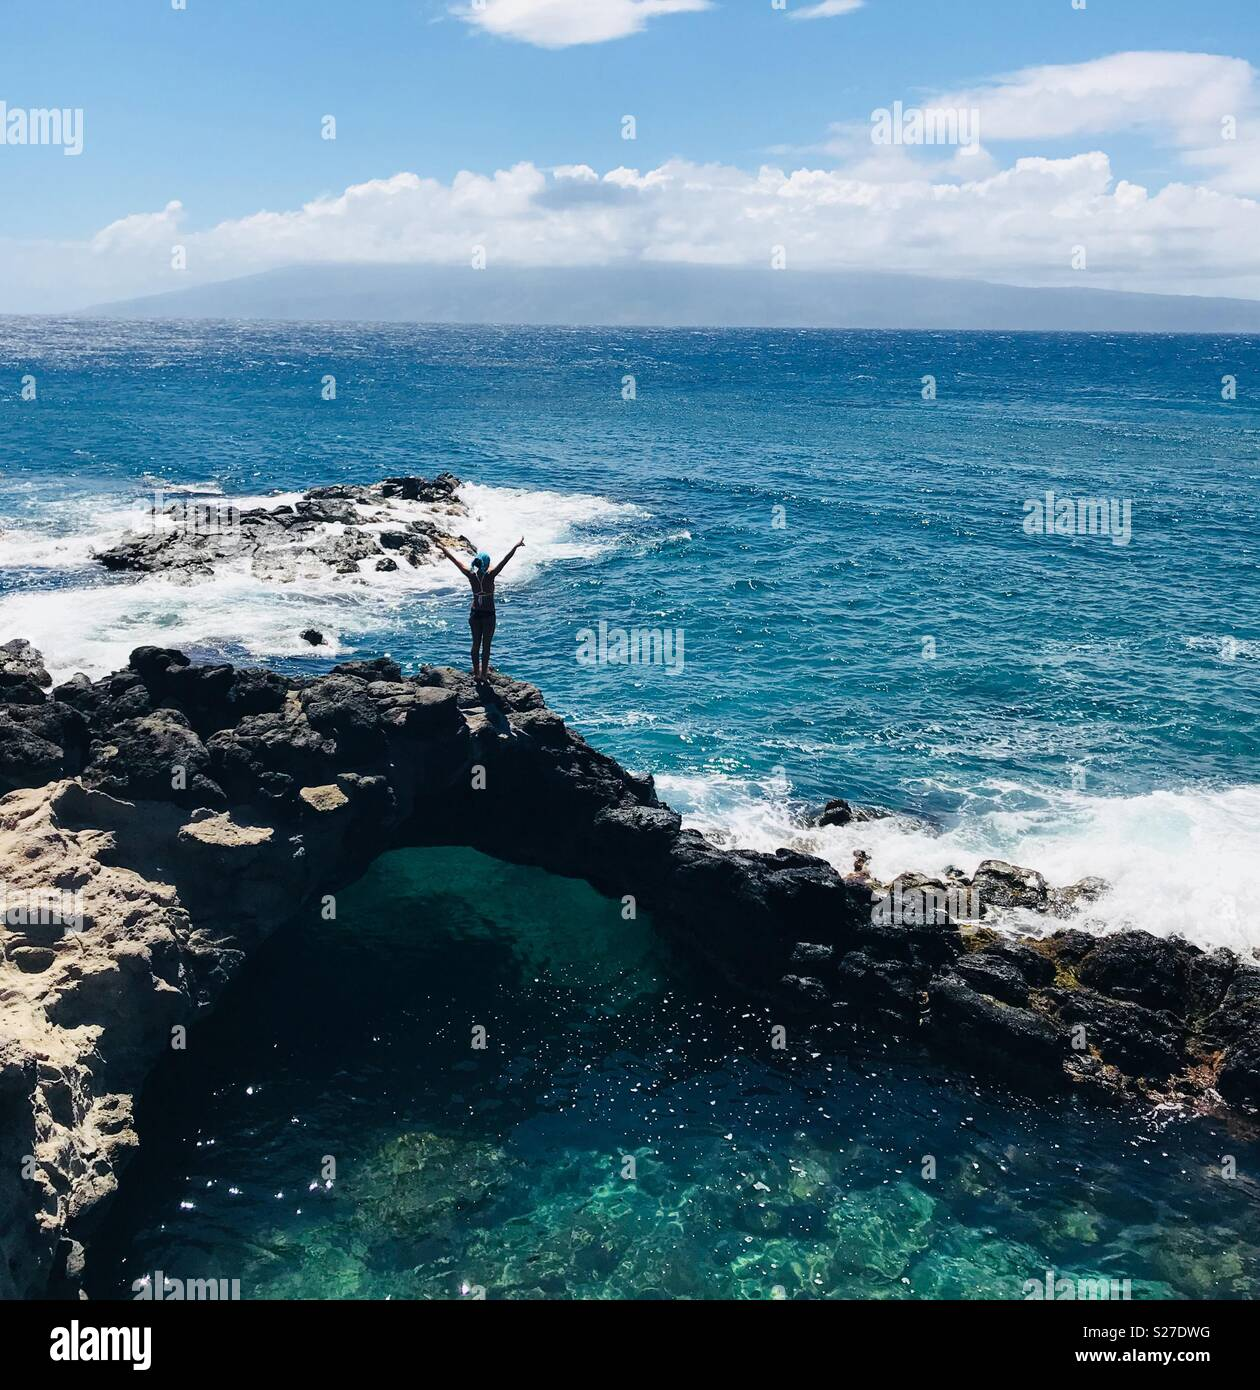 2b1aeb25f5f Me getting ready to jump in giving out the peace sign! Can t get enough of  this tide pool! Such a hidden beautiful gem! Summertime in Maui No Ka Oi!